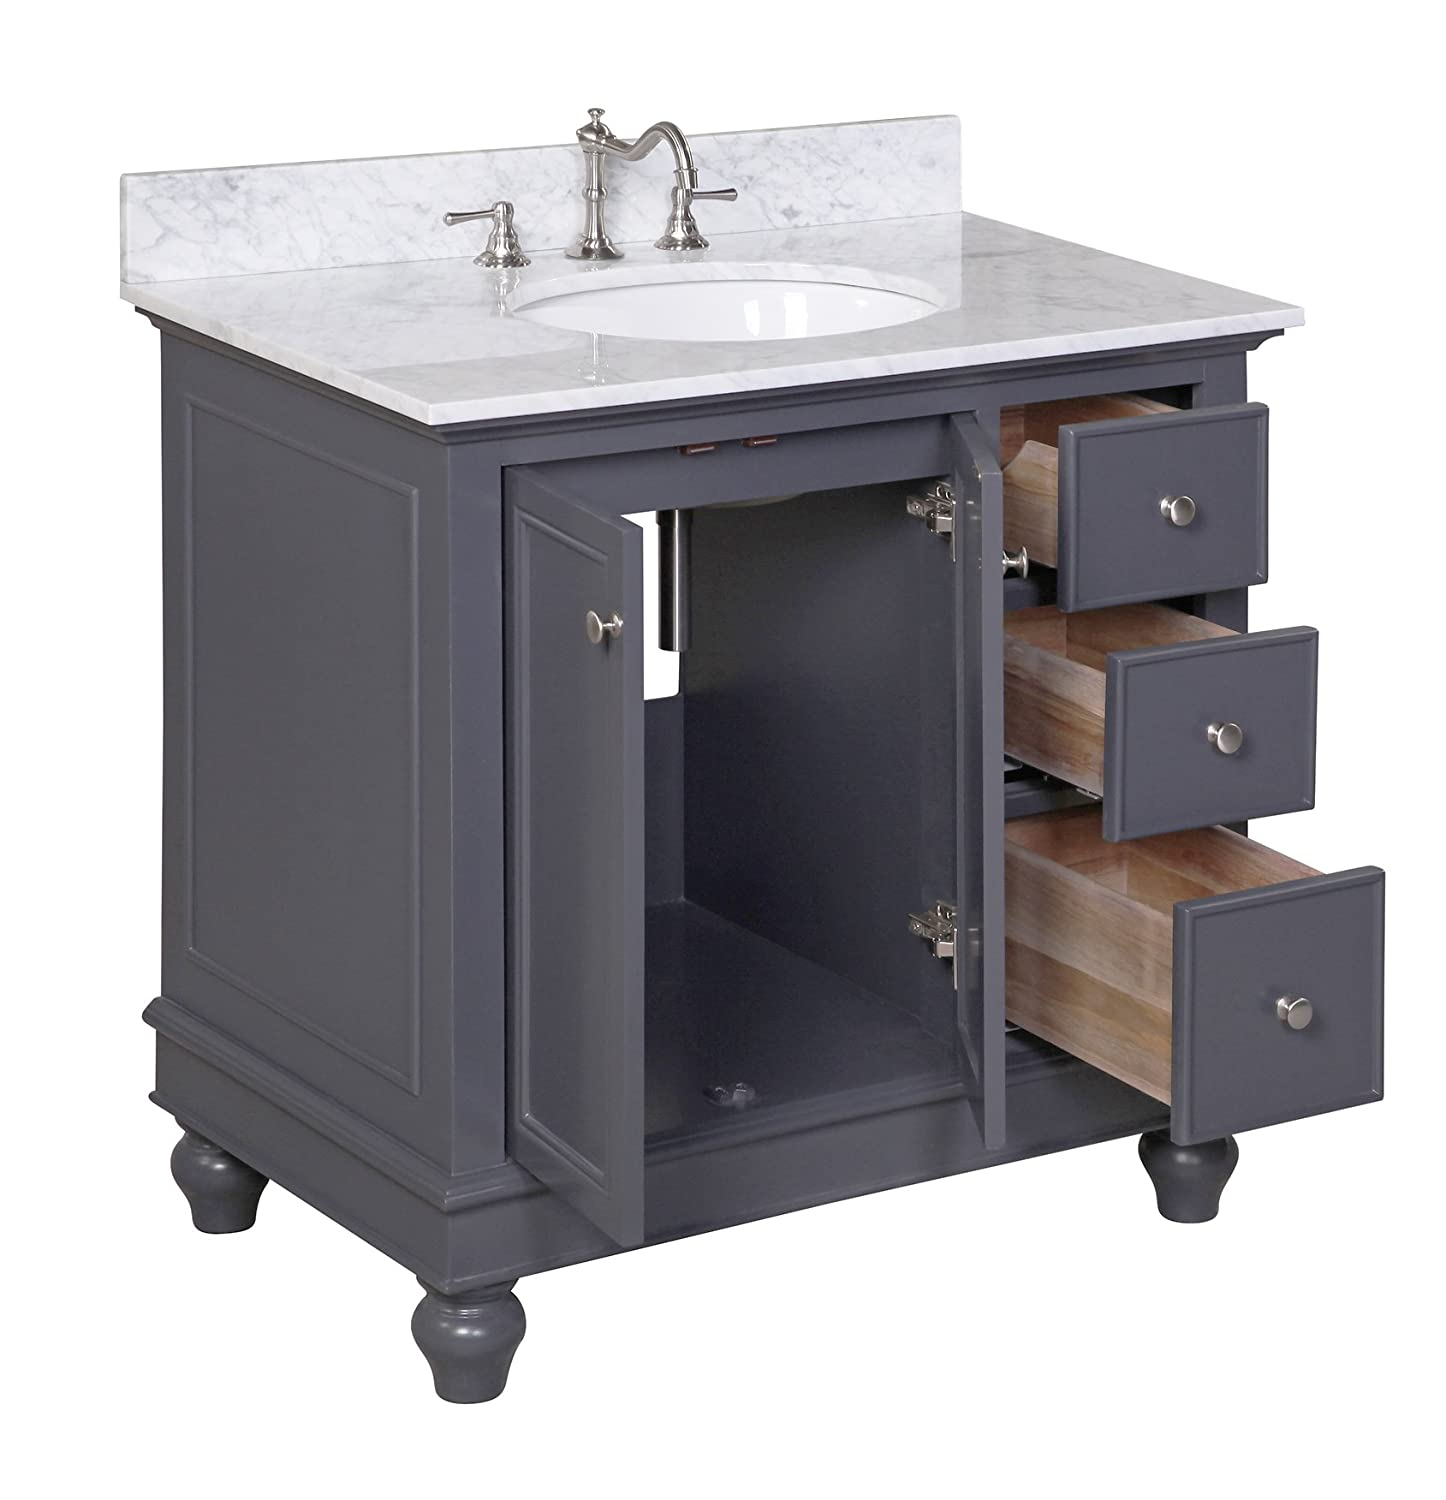 Kitchen Bath Collection KBC2236GYCARR Bella Bathroom Vanity With Marble  Countertop, Cabinet With Soft Close Function And Undermount Ceramic Sink,  ...